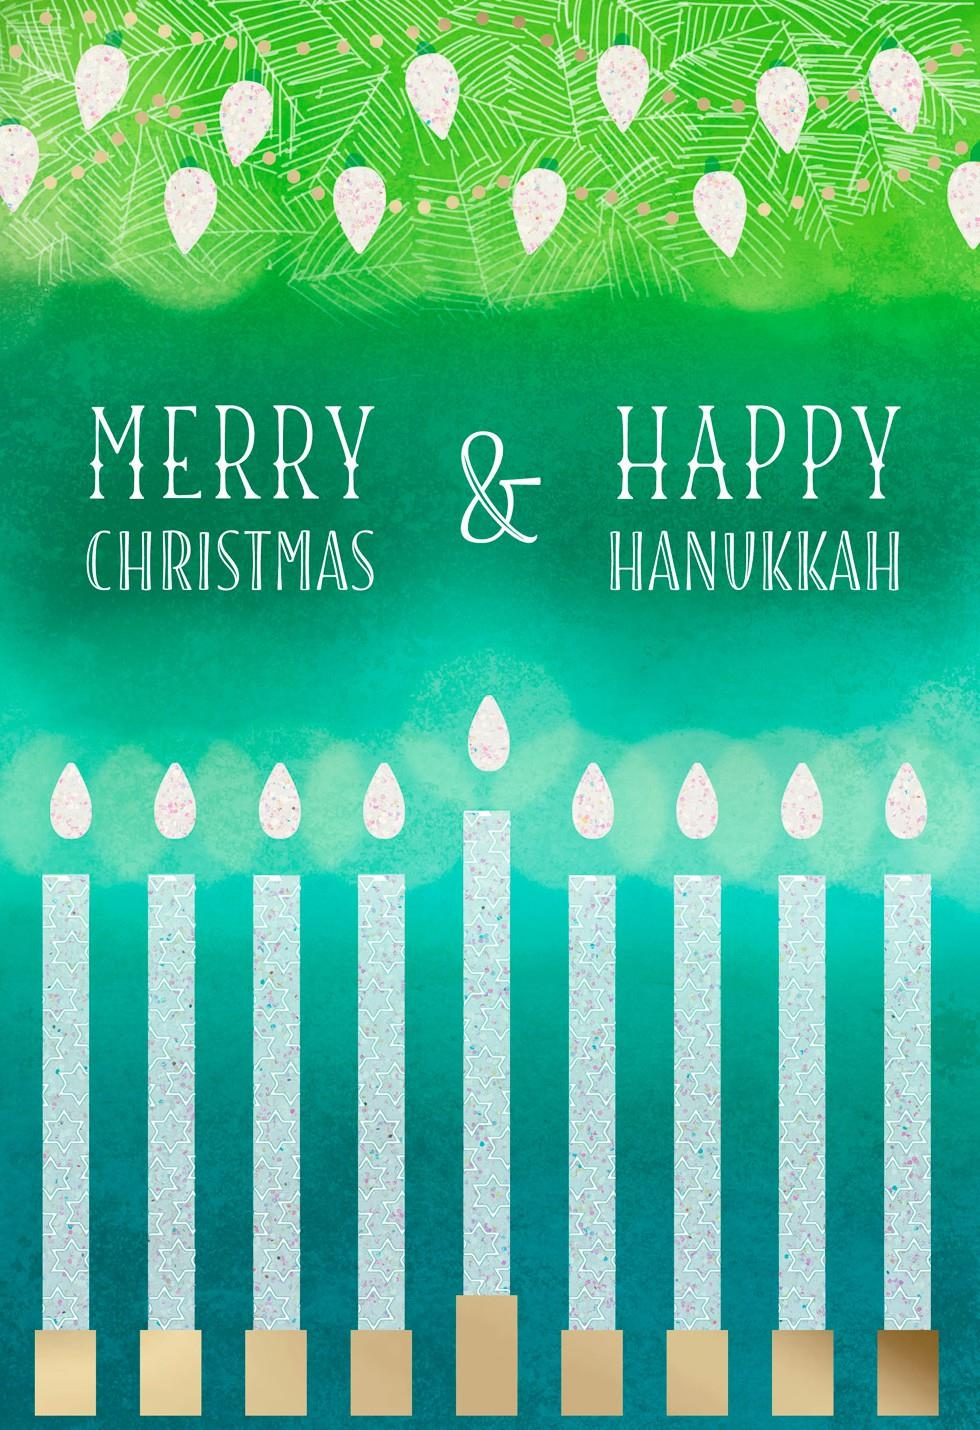 merry christmas and happy hanukkah card